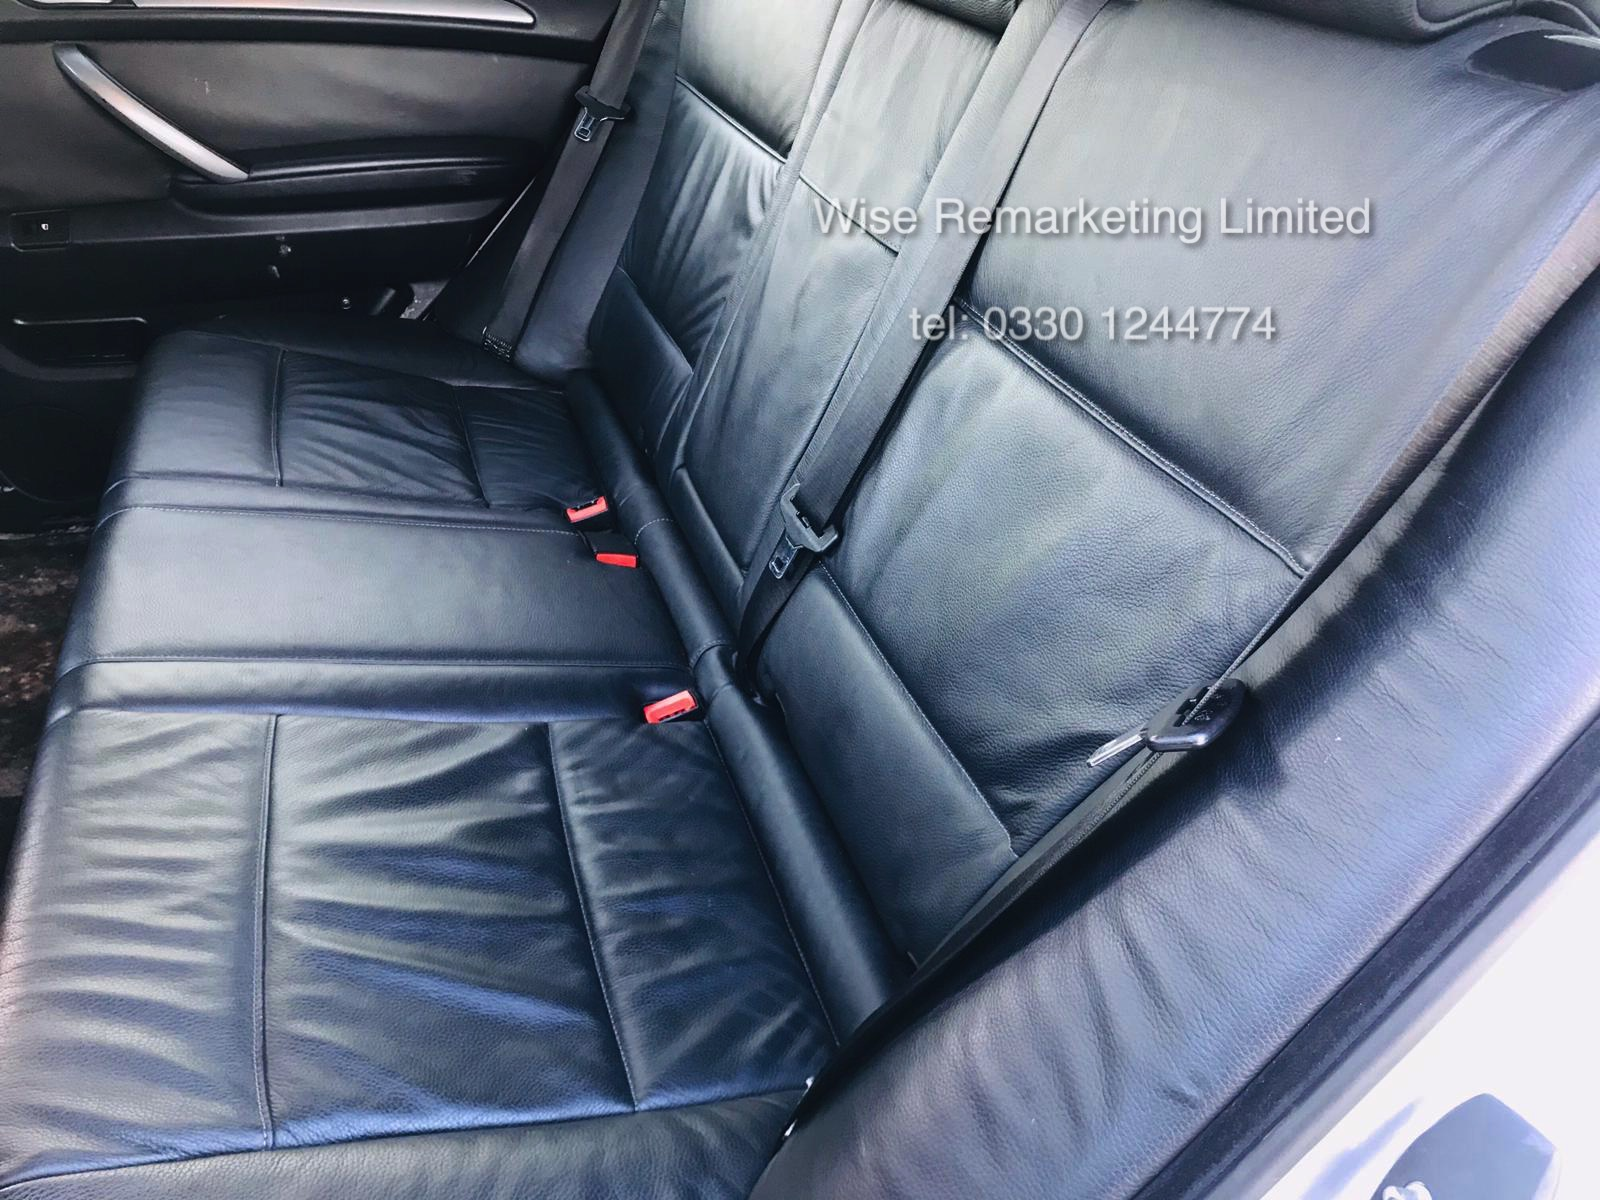 BMW X5 Sport 3.0d Auto - 2006 Model - Full Leather - Heated Seats - Fully Loaded - Image 15 of 20